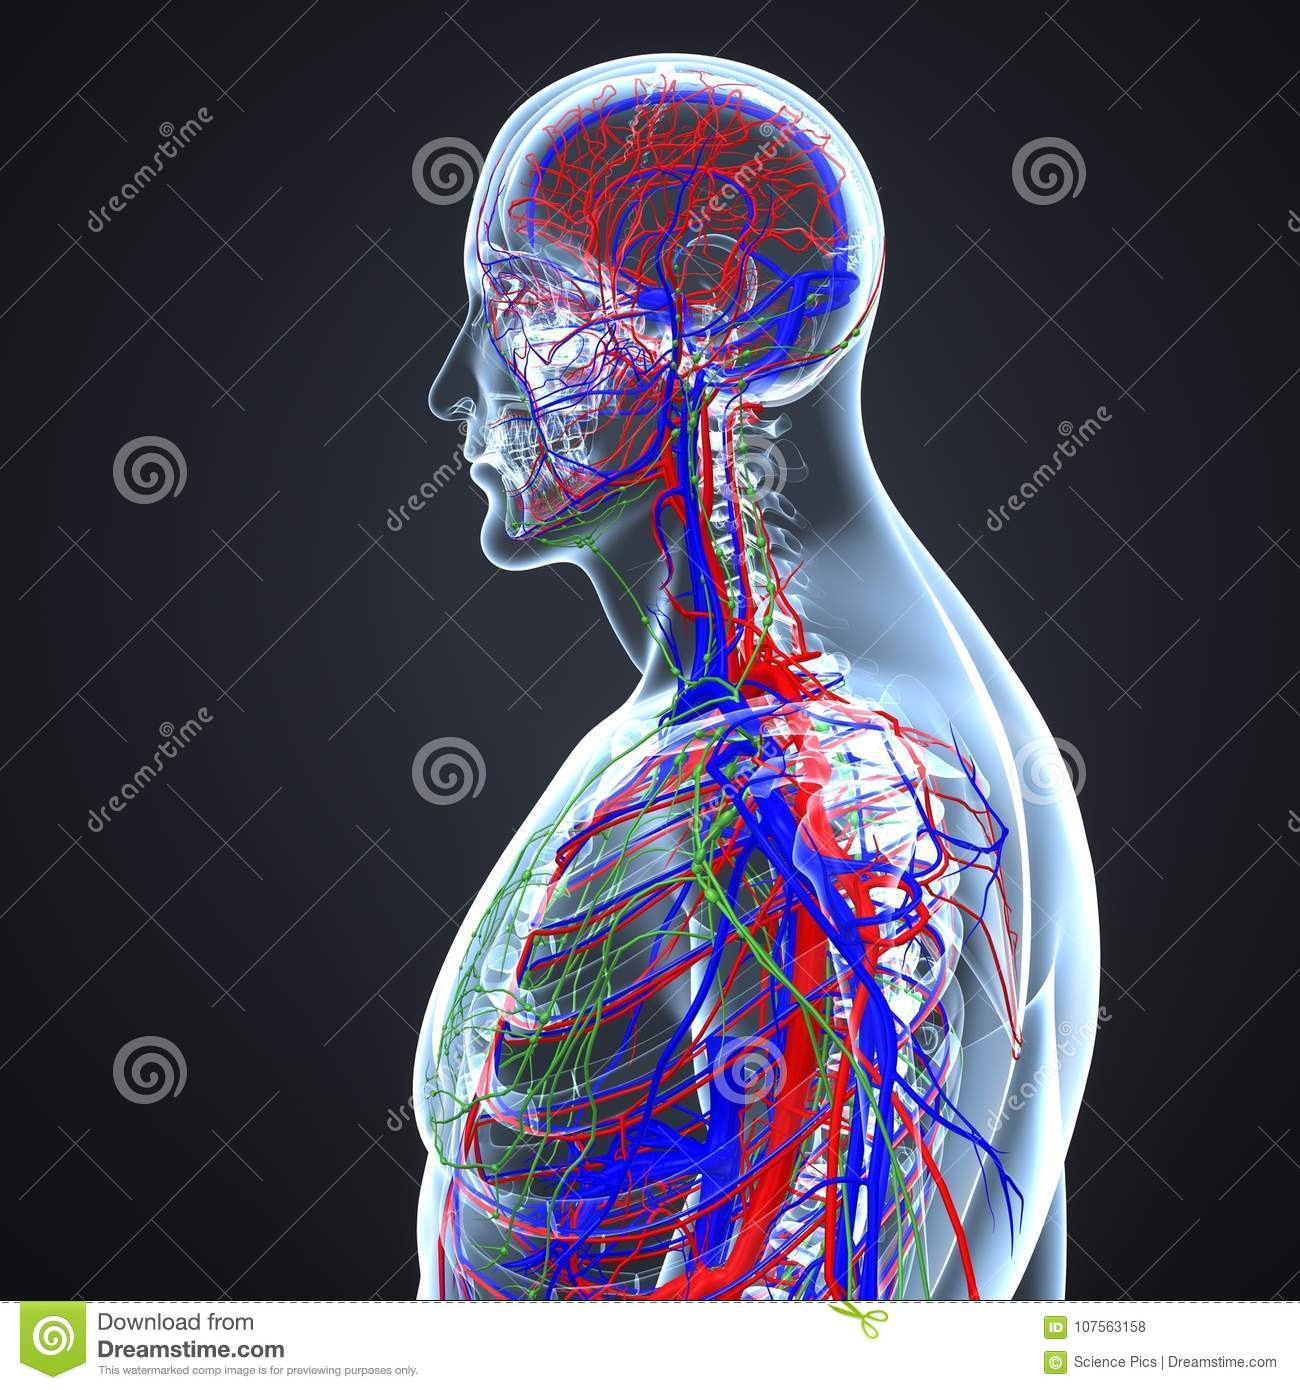 Arteries, Veins And Lymph Nodes With Skeletal Body Lateral